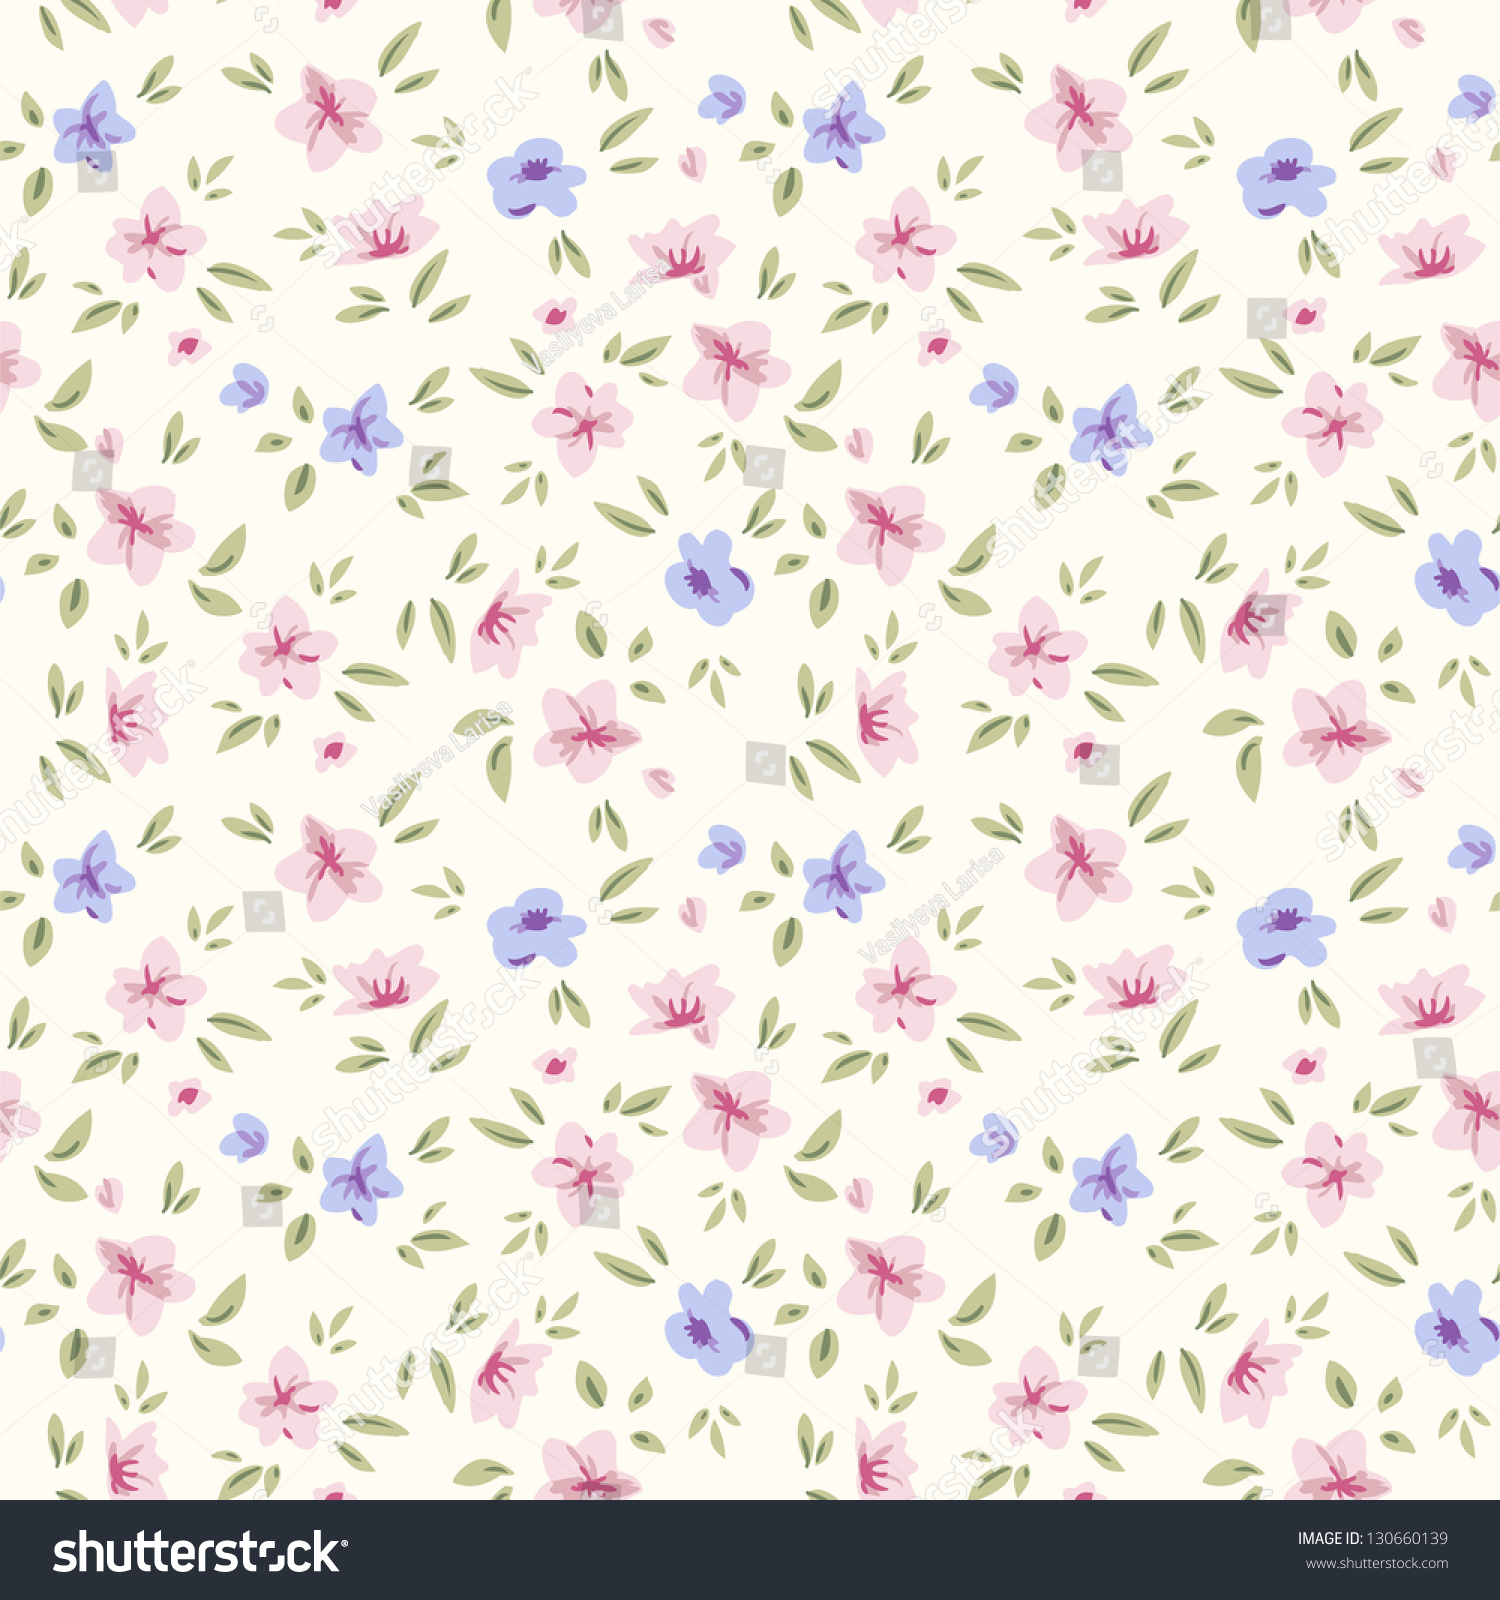 Simple flower pattern background - photo#2